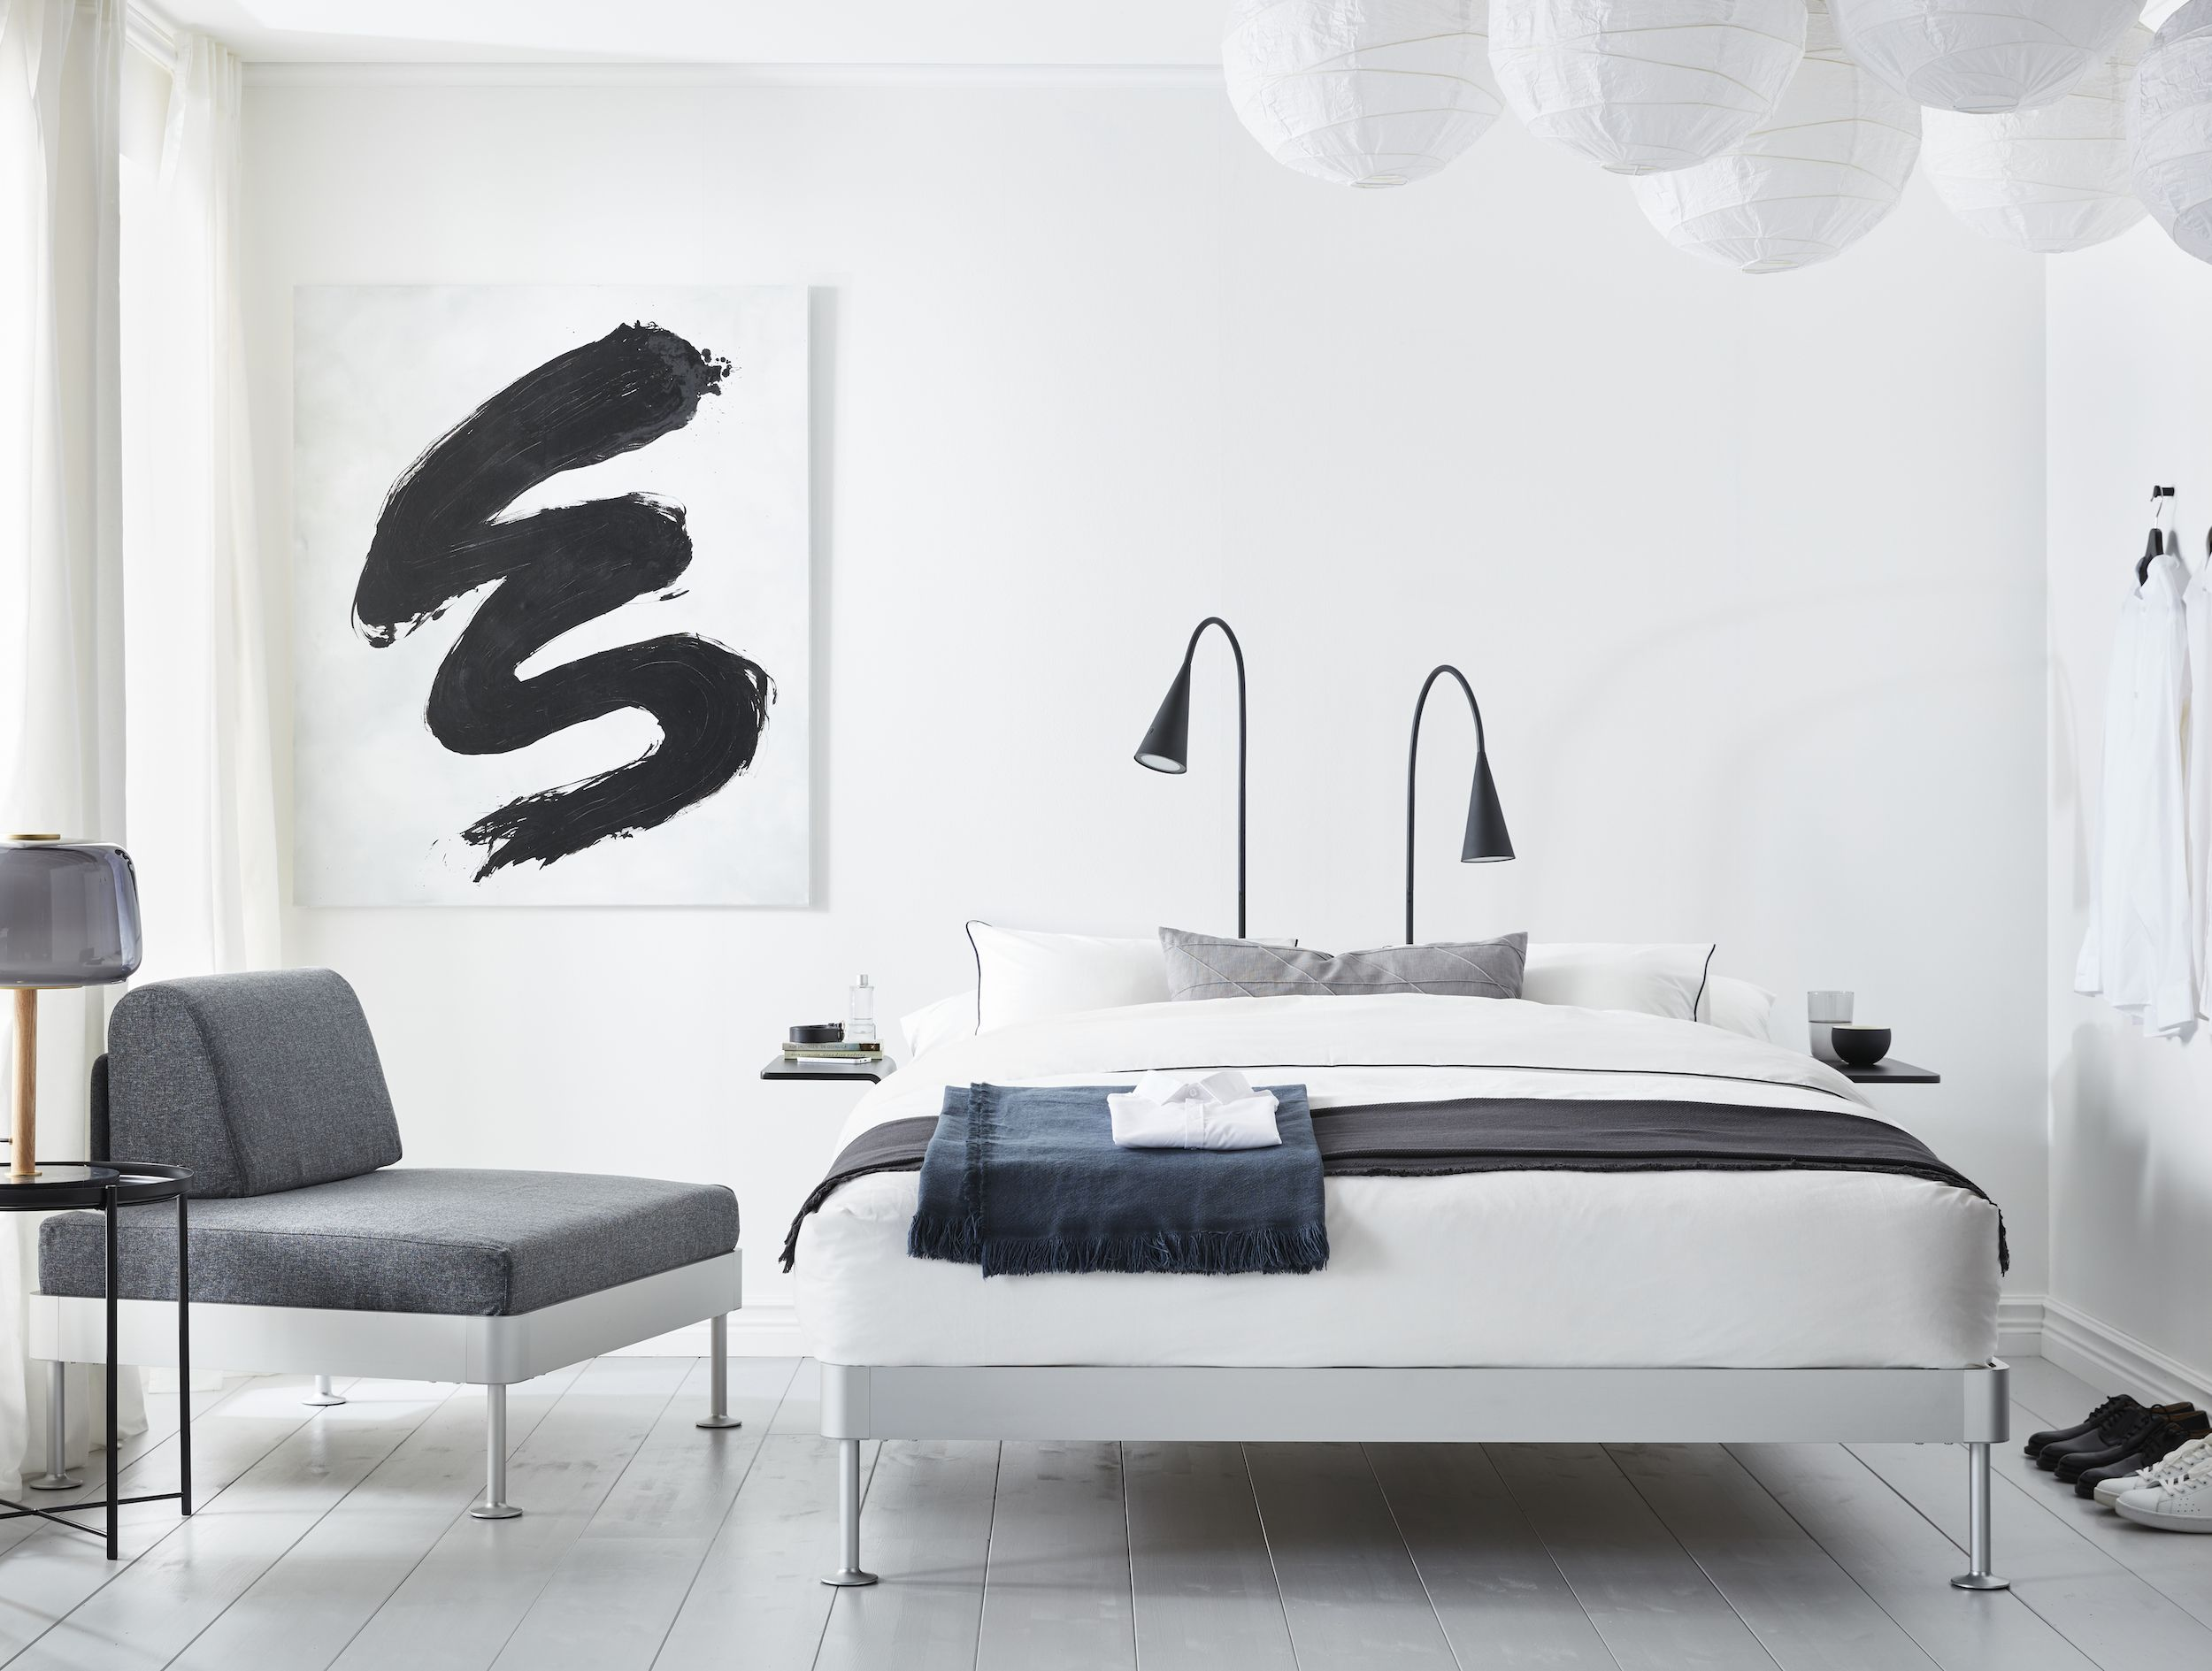 Tom Dixon Launched A Bedroom Line For Ikea That Makes Use Of Every Inch Space You Have